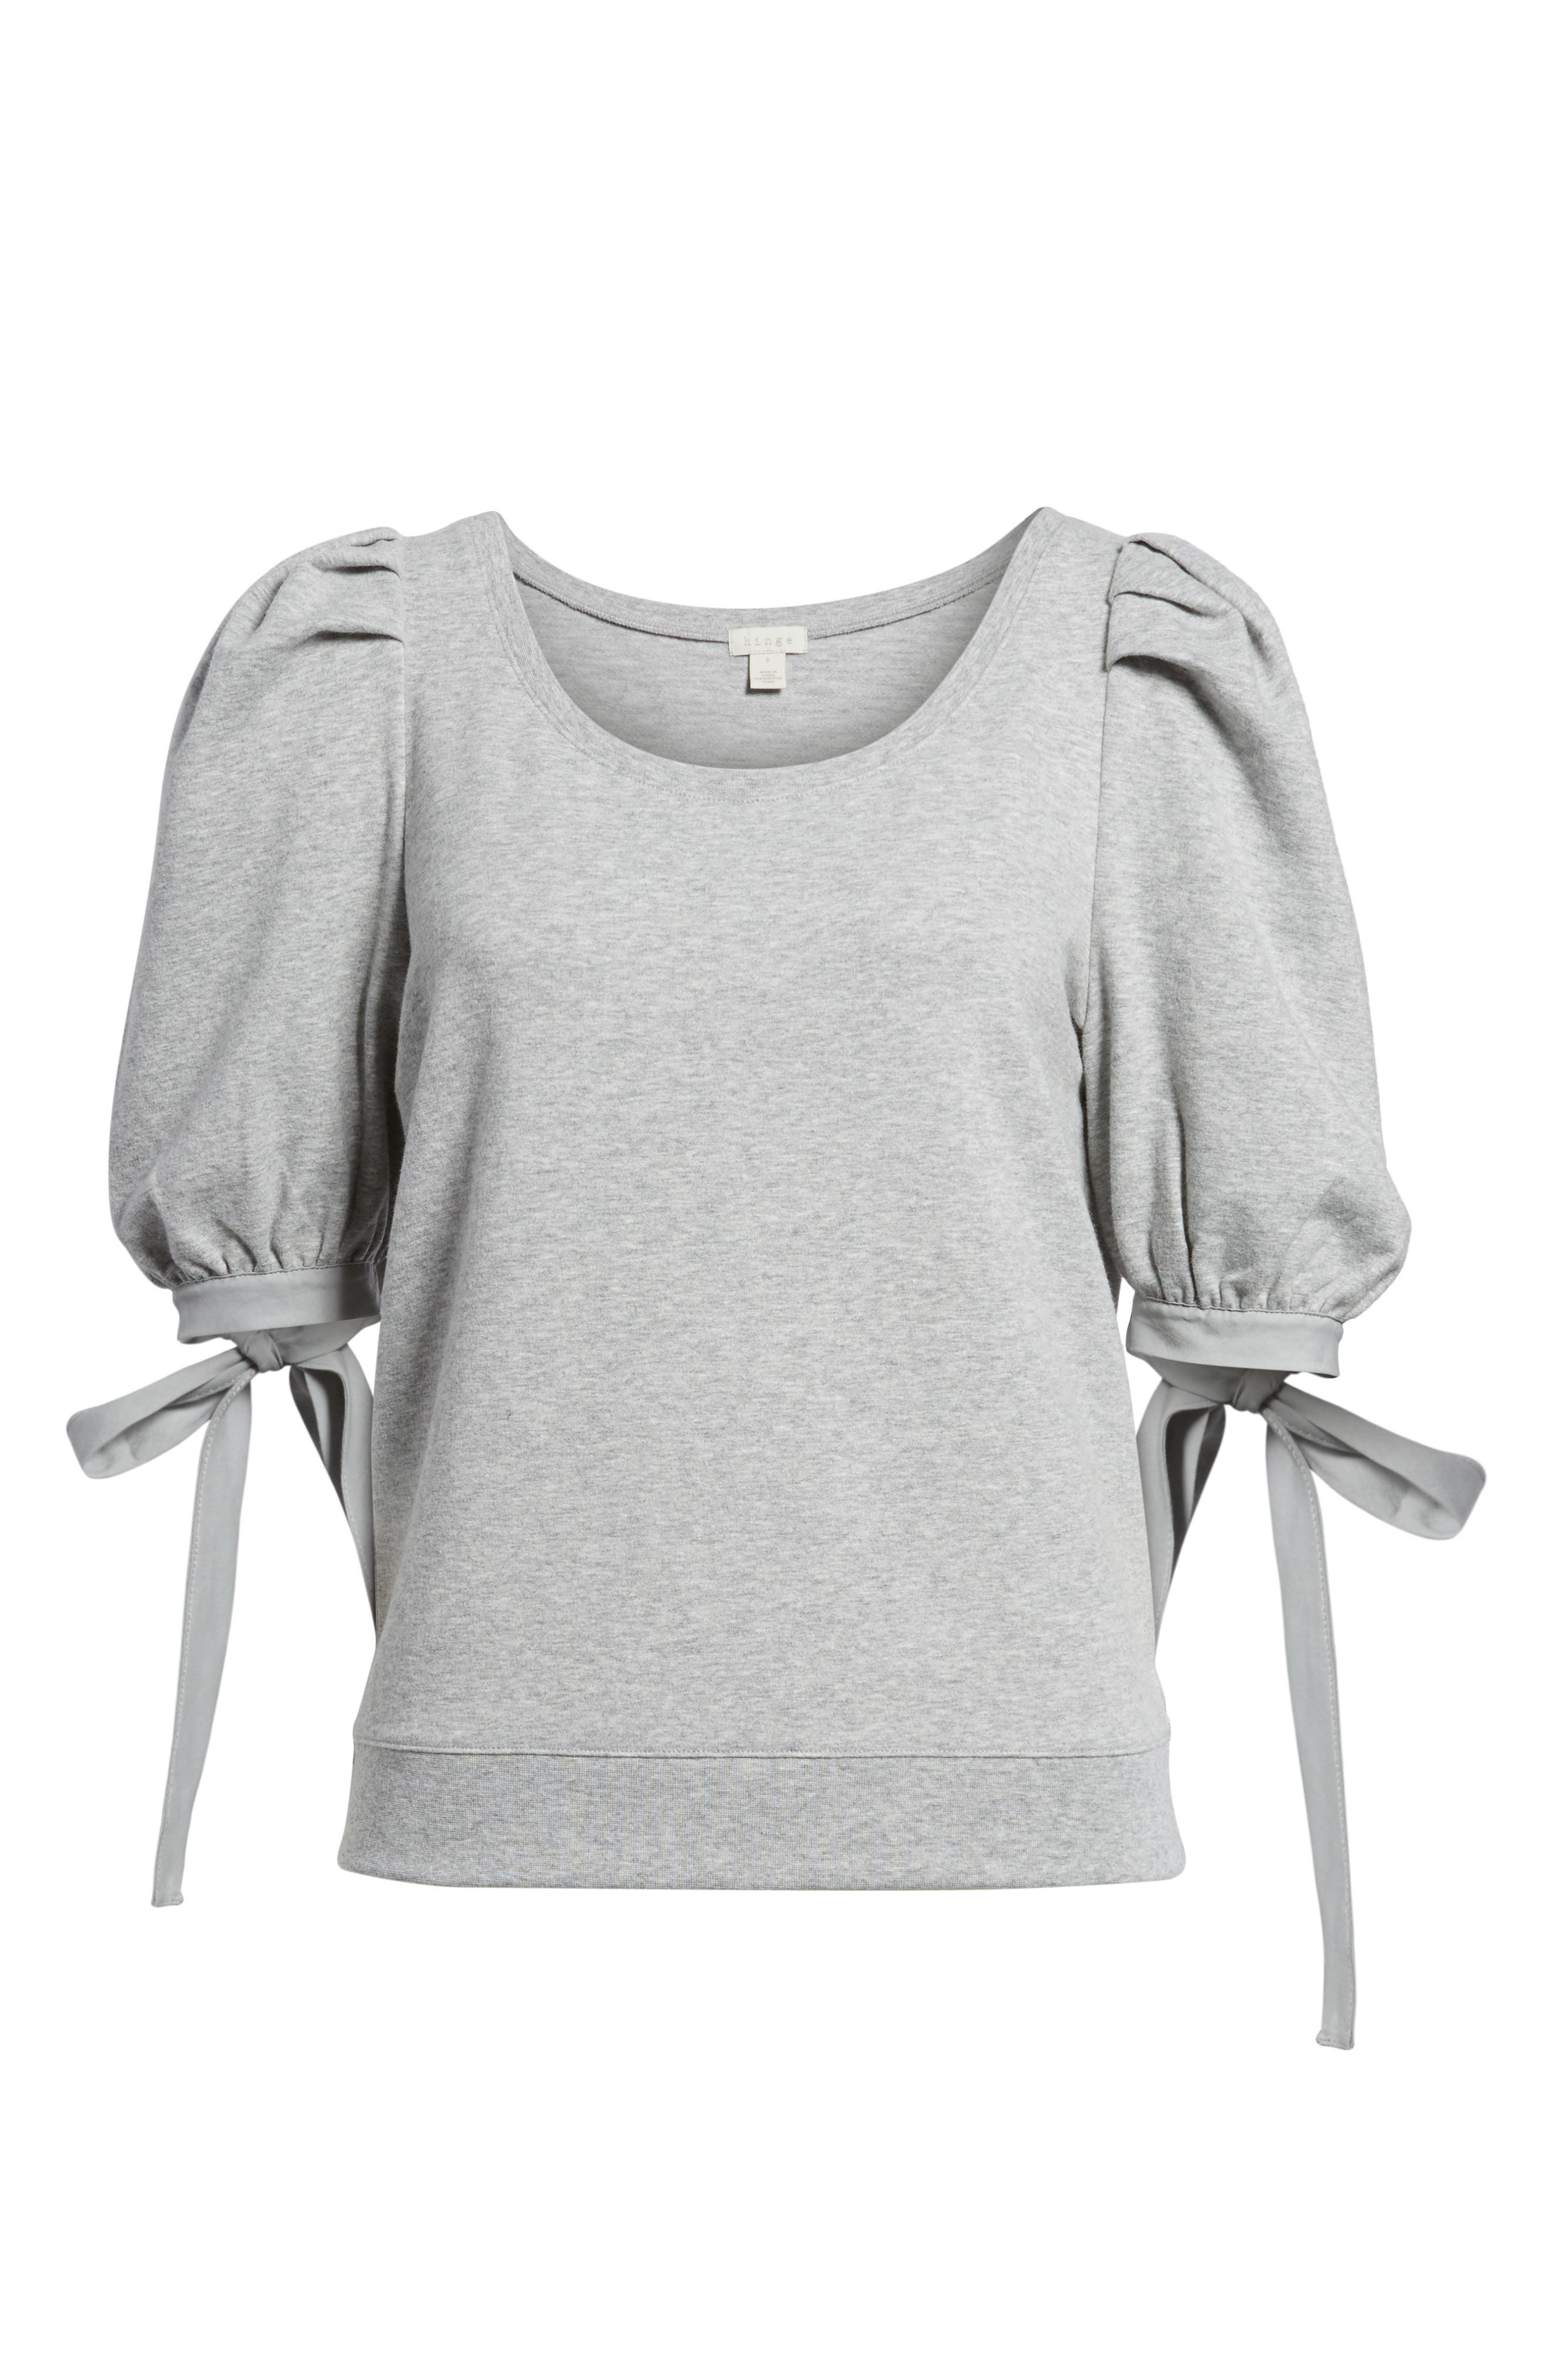 Puff Sleeve Top,                             Alternate thumbnail 6, color,                             Grey Heather